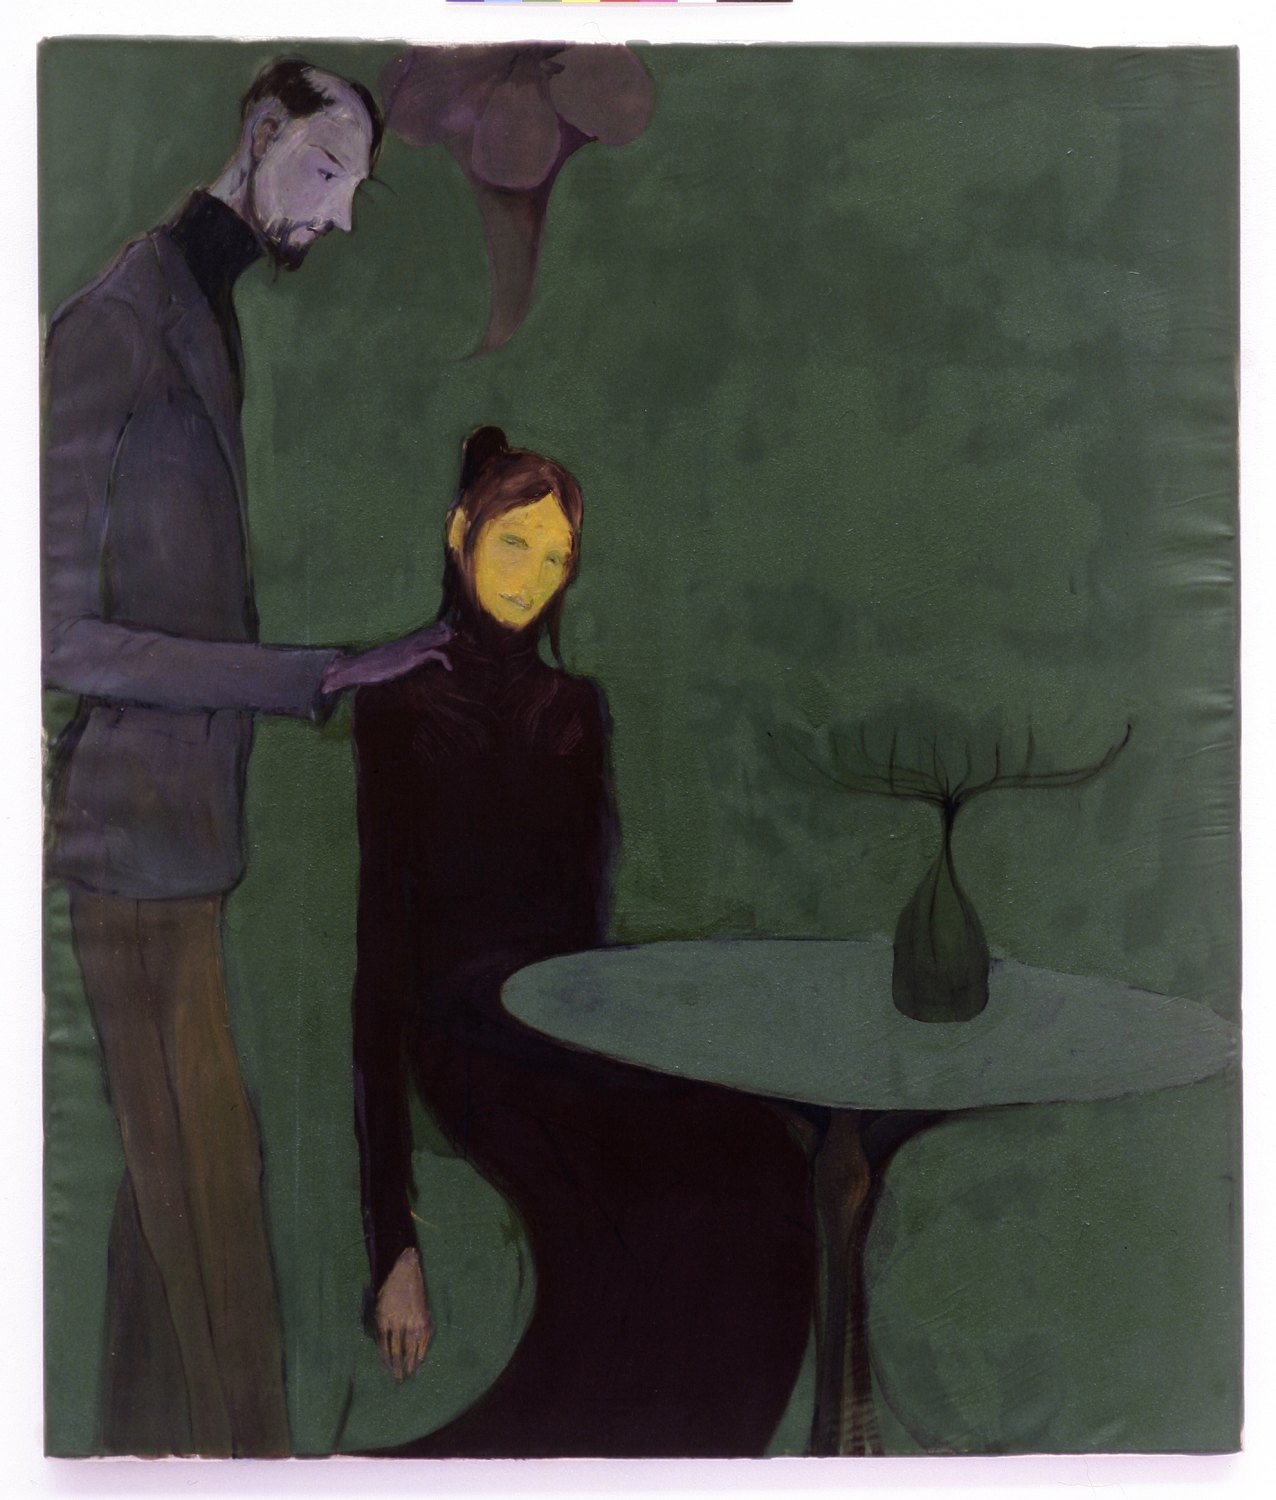 Kai Althoff Untitled, 2004 Oil on canvas, 82.5 × 69.5 cm